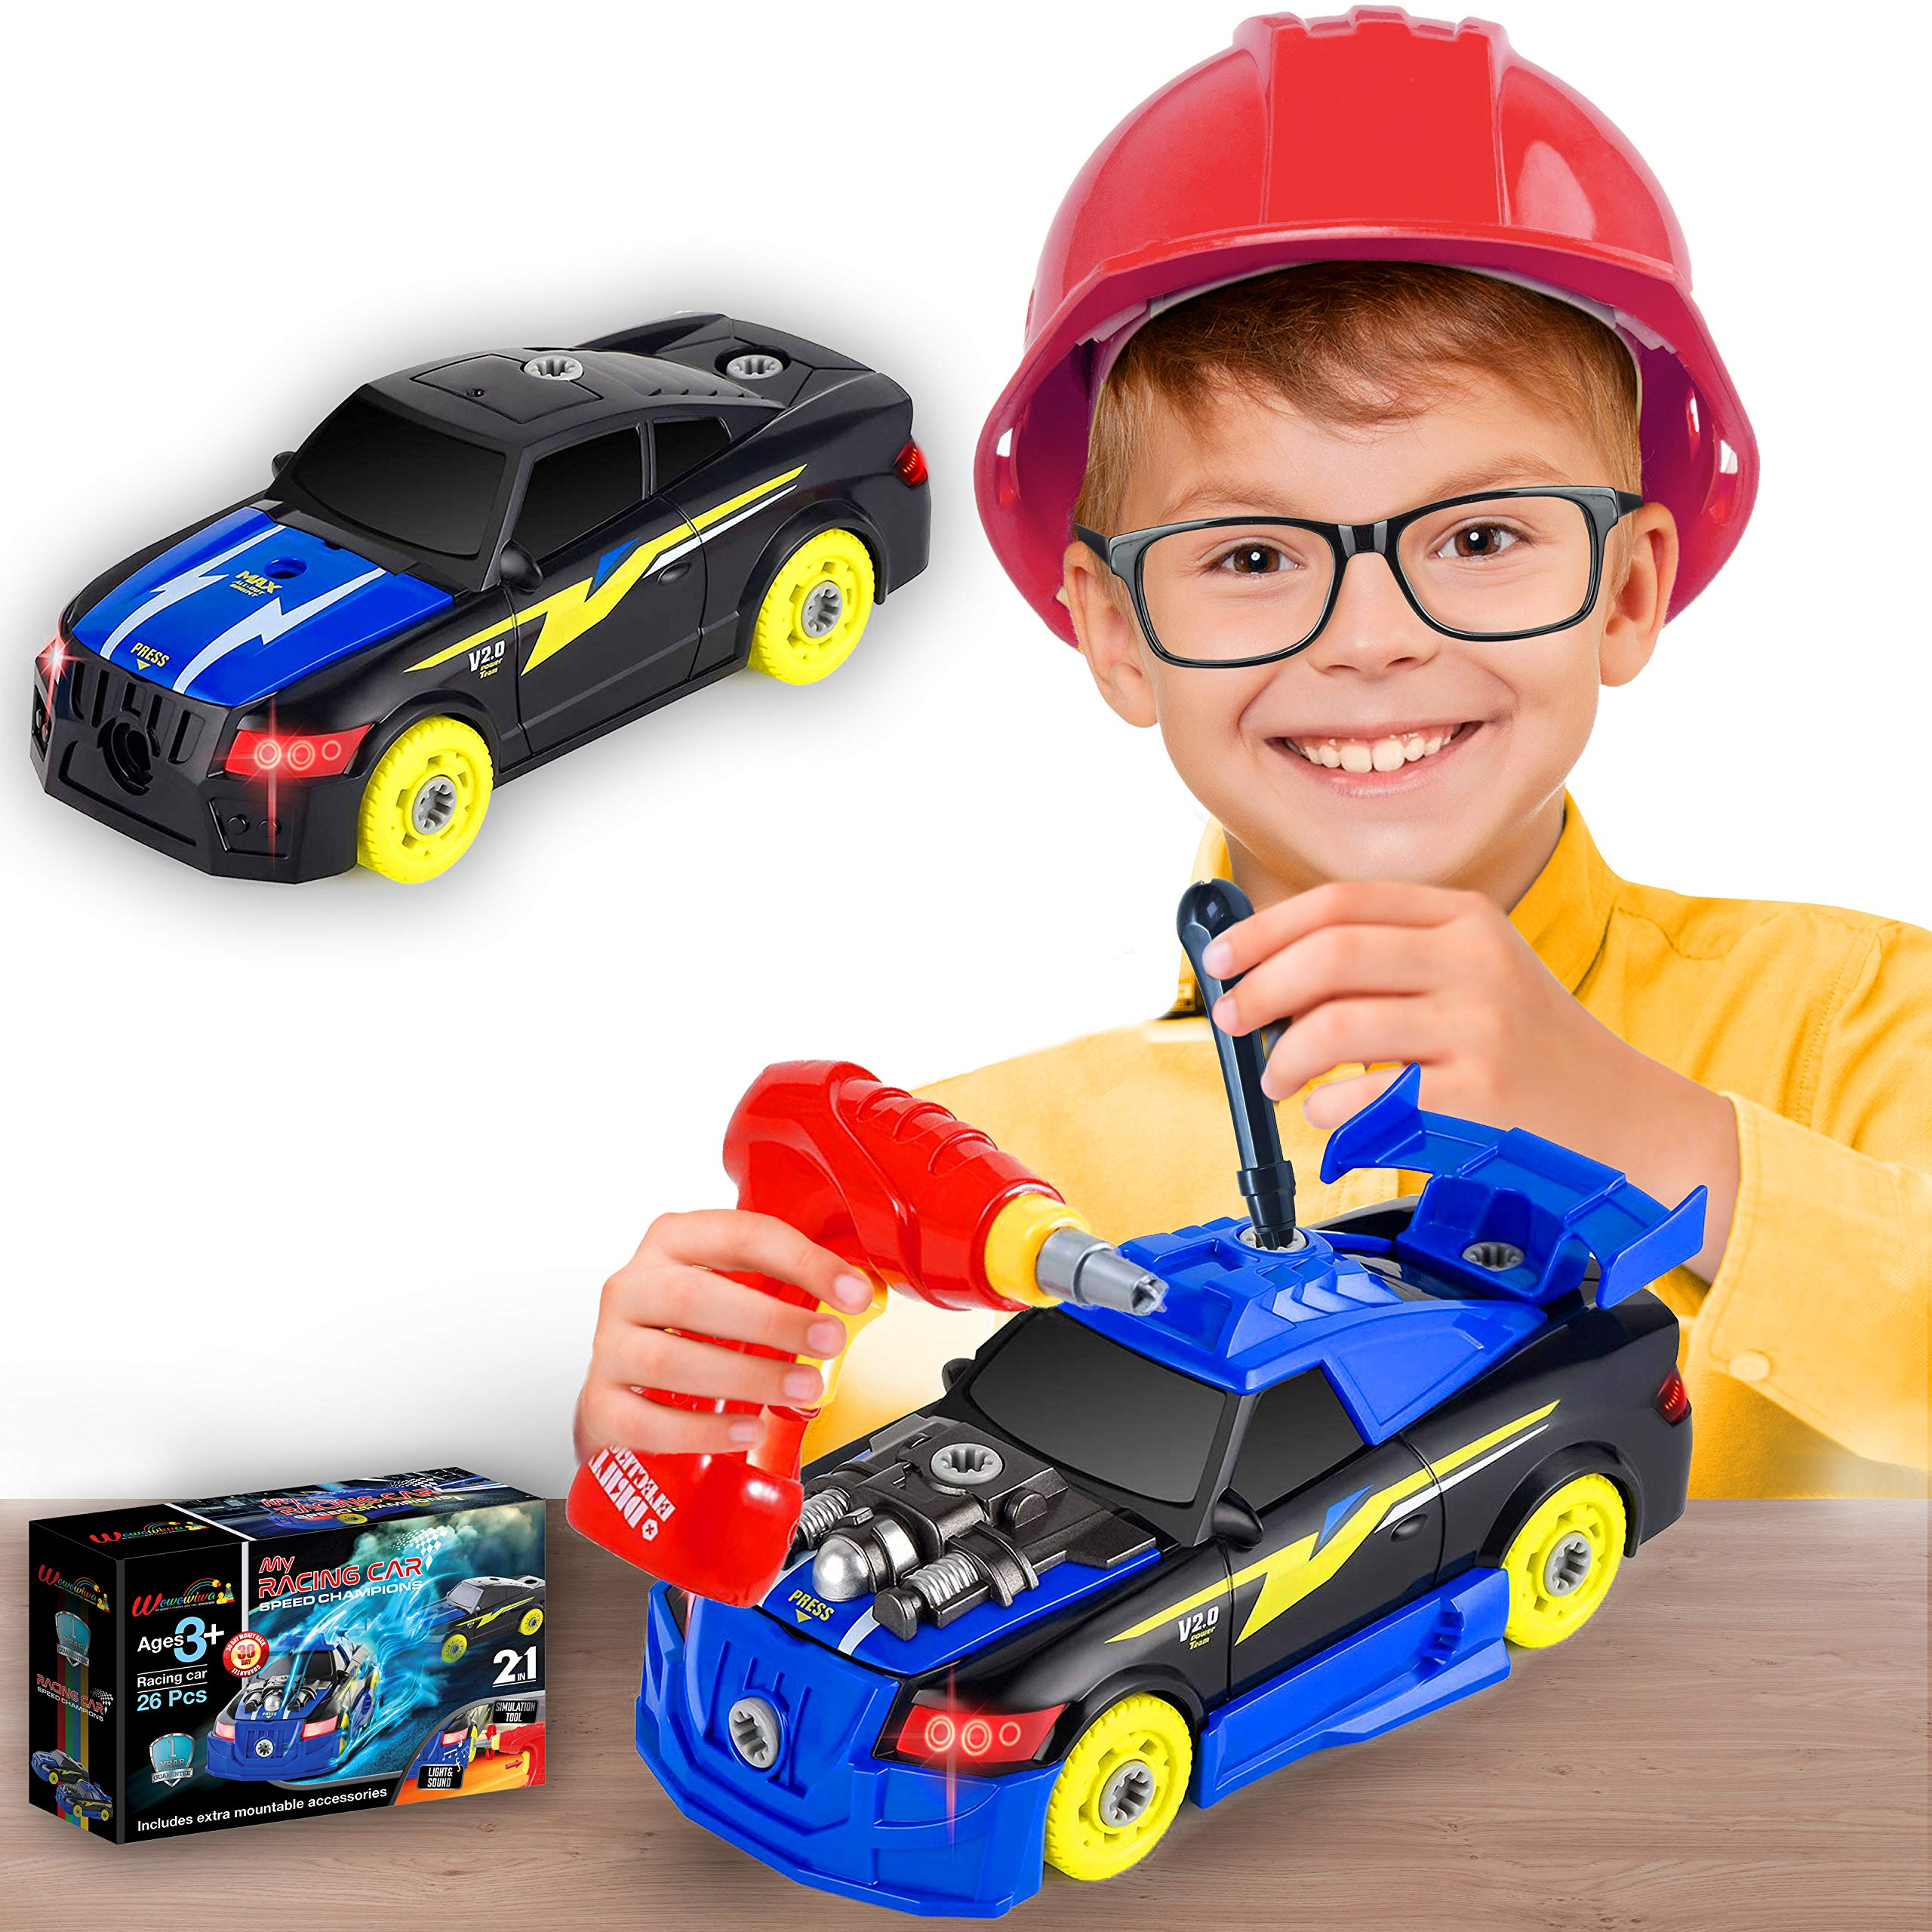 STEM Racing Car Assemble Car Construction Vehicle Take Apart Toy Limei Electric Drill Tool with Realistic Sounds and Lights for Kids Age 3 4 5 6 7 8 9 Years Old Supply by Noble Toys Brand 32Pcs